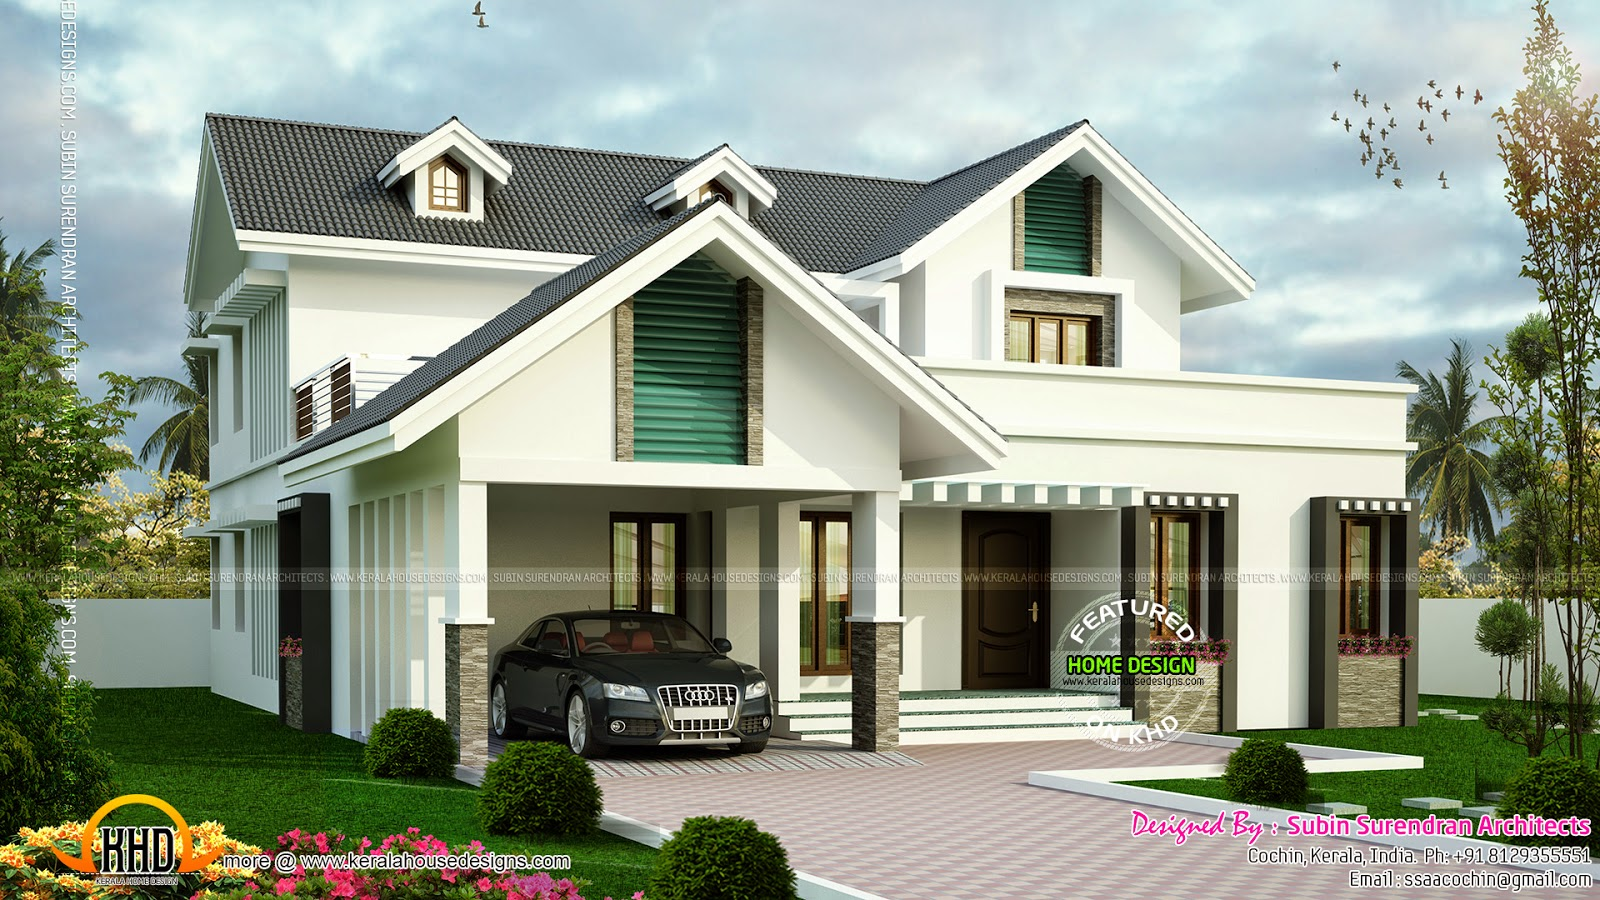 Modern sloping roof house with dormer windows kerala for Home to win designers